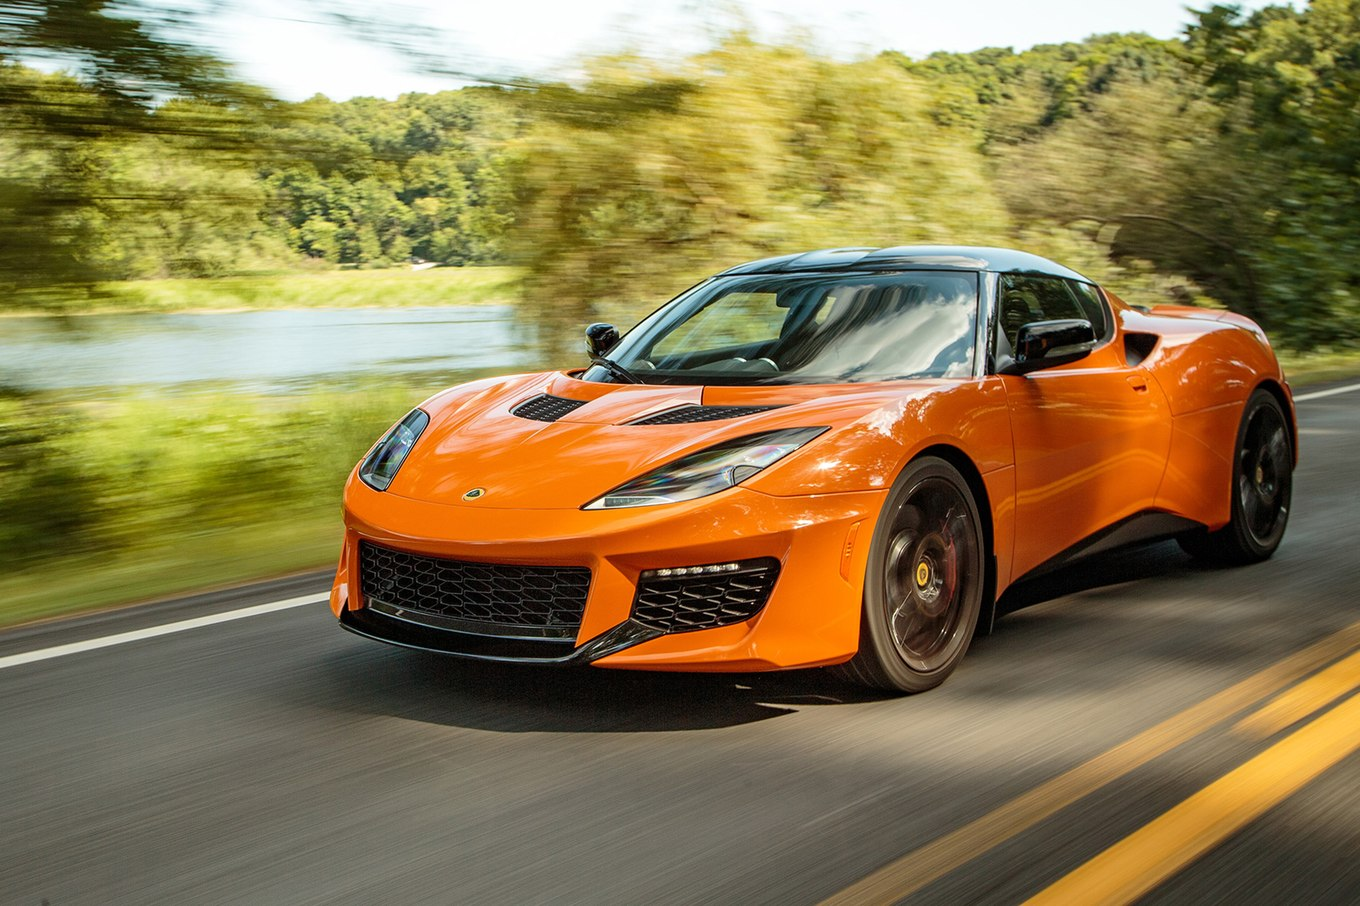 Lotus evora photo - 9